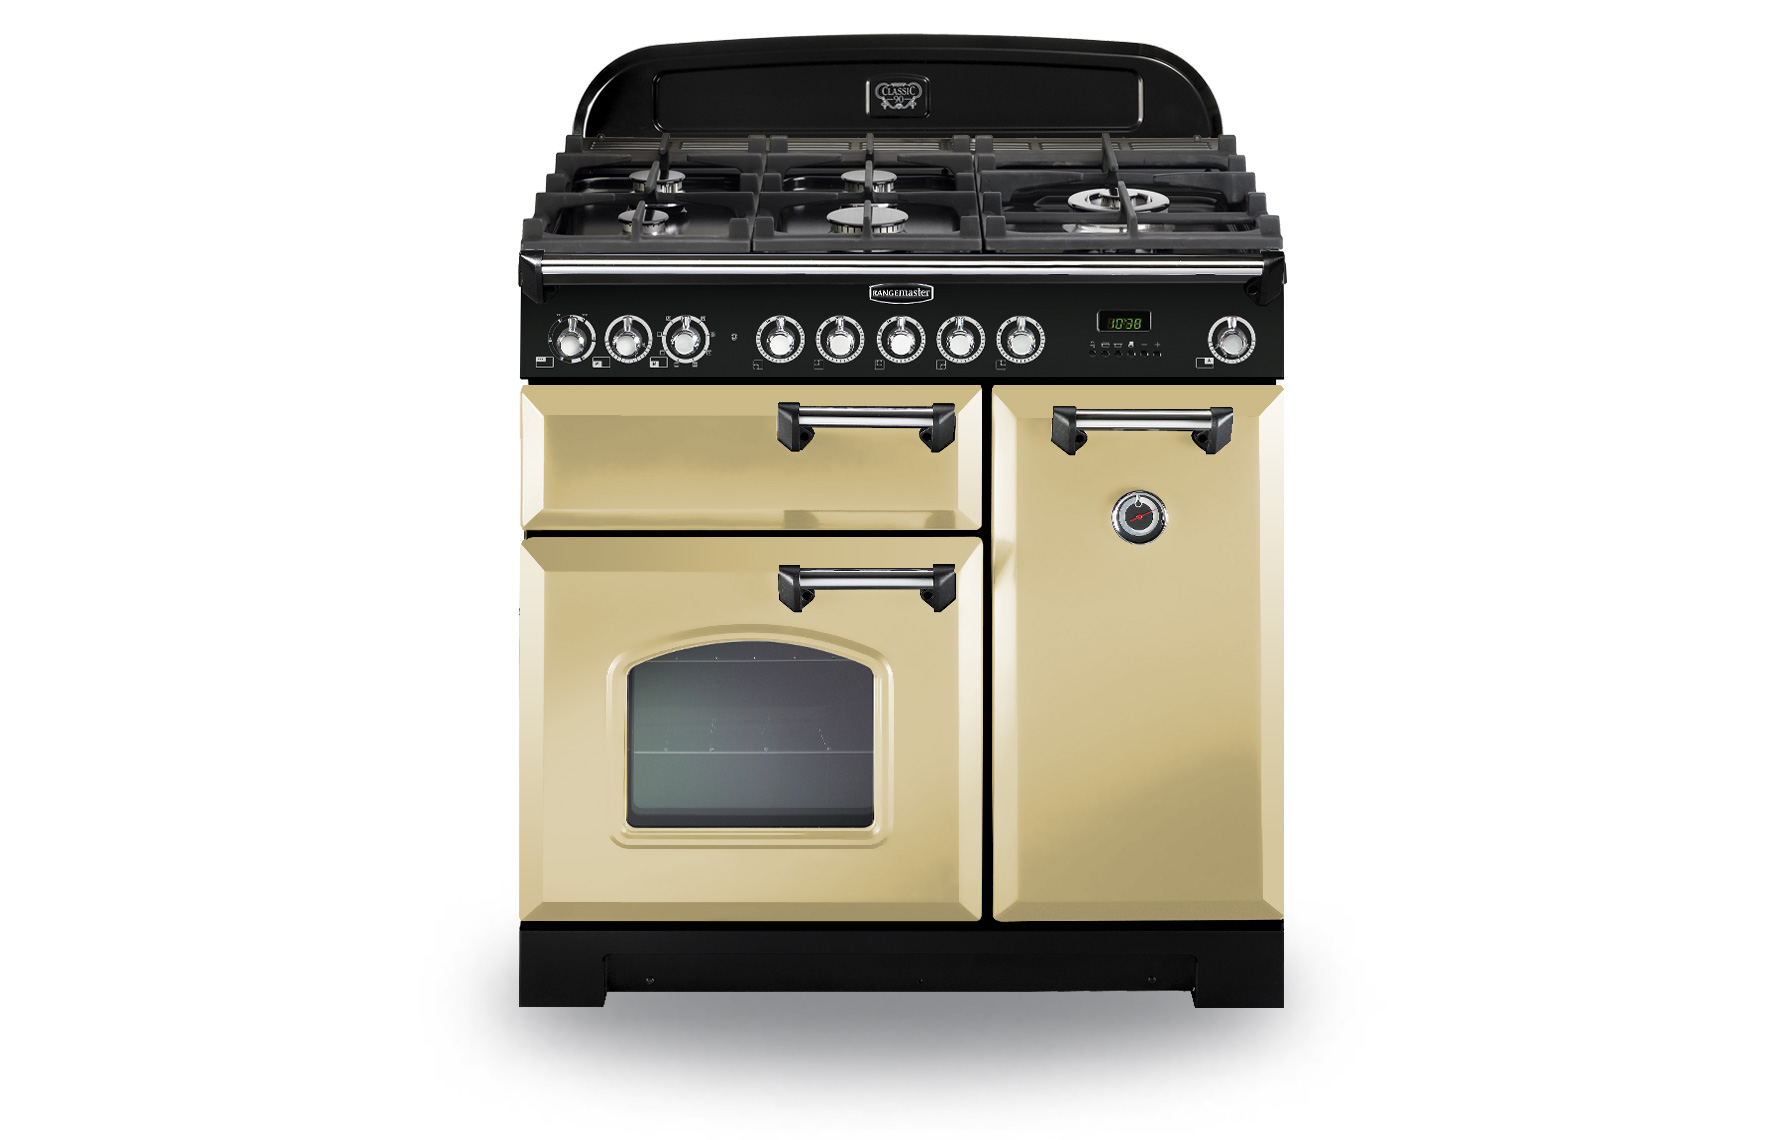 rangemaster classic deluxe 90 range cookers rangecookers. Black Bedroom Furniture Sets. Home Design Ideas